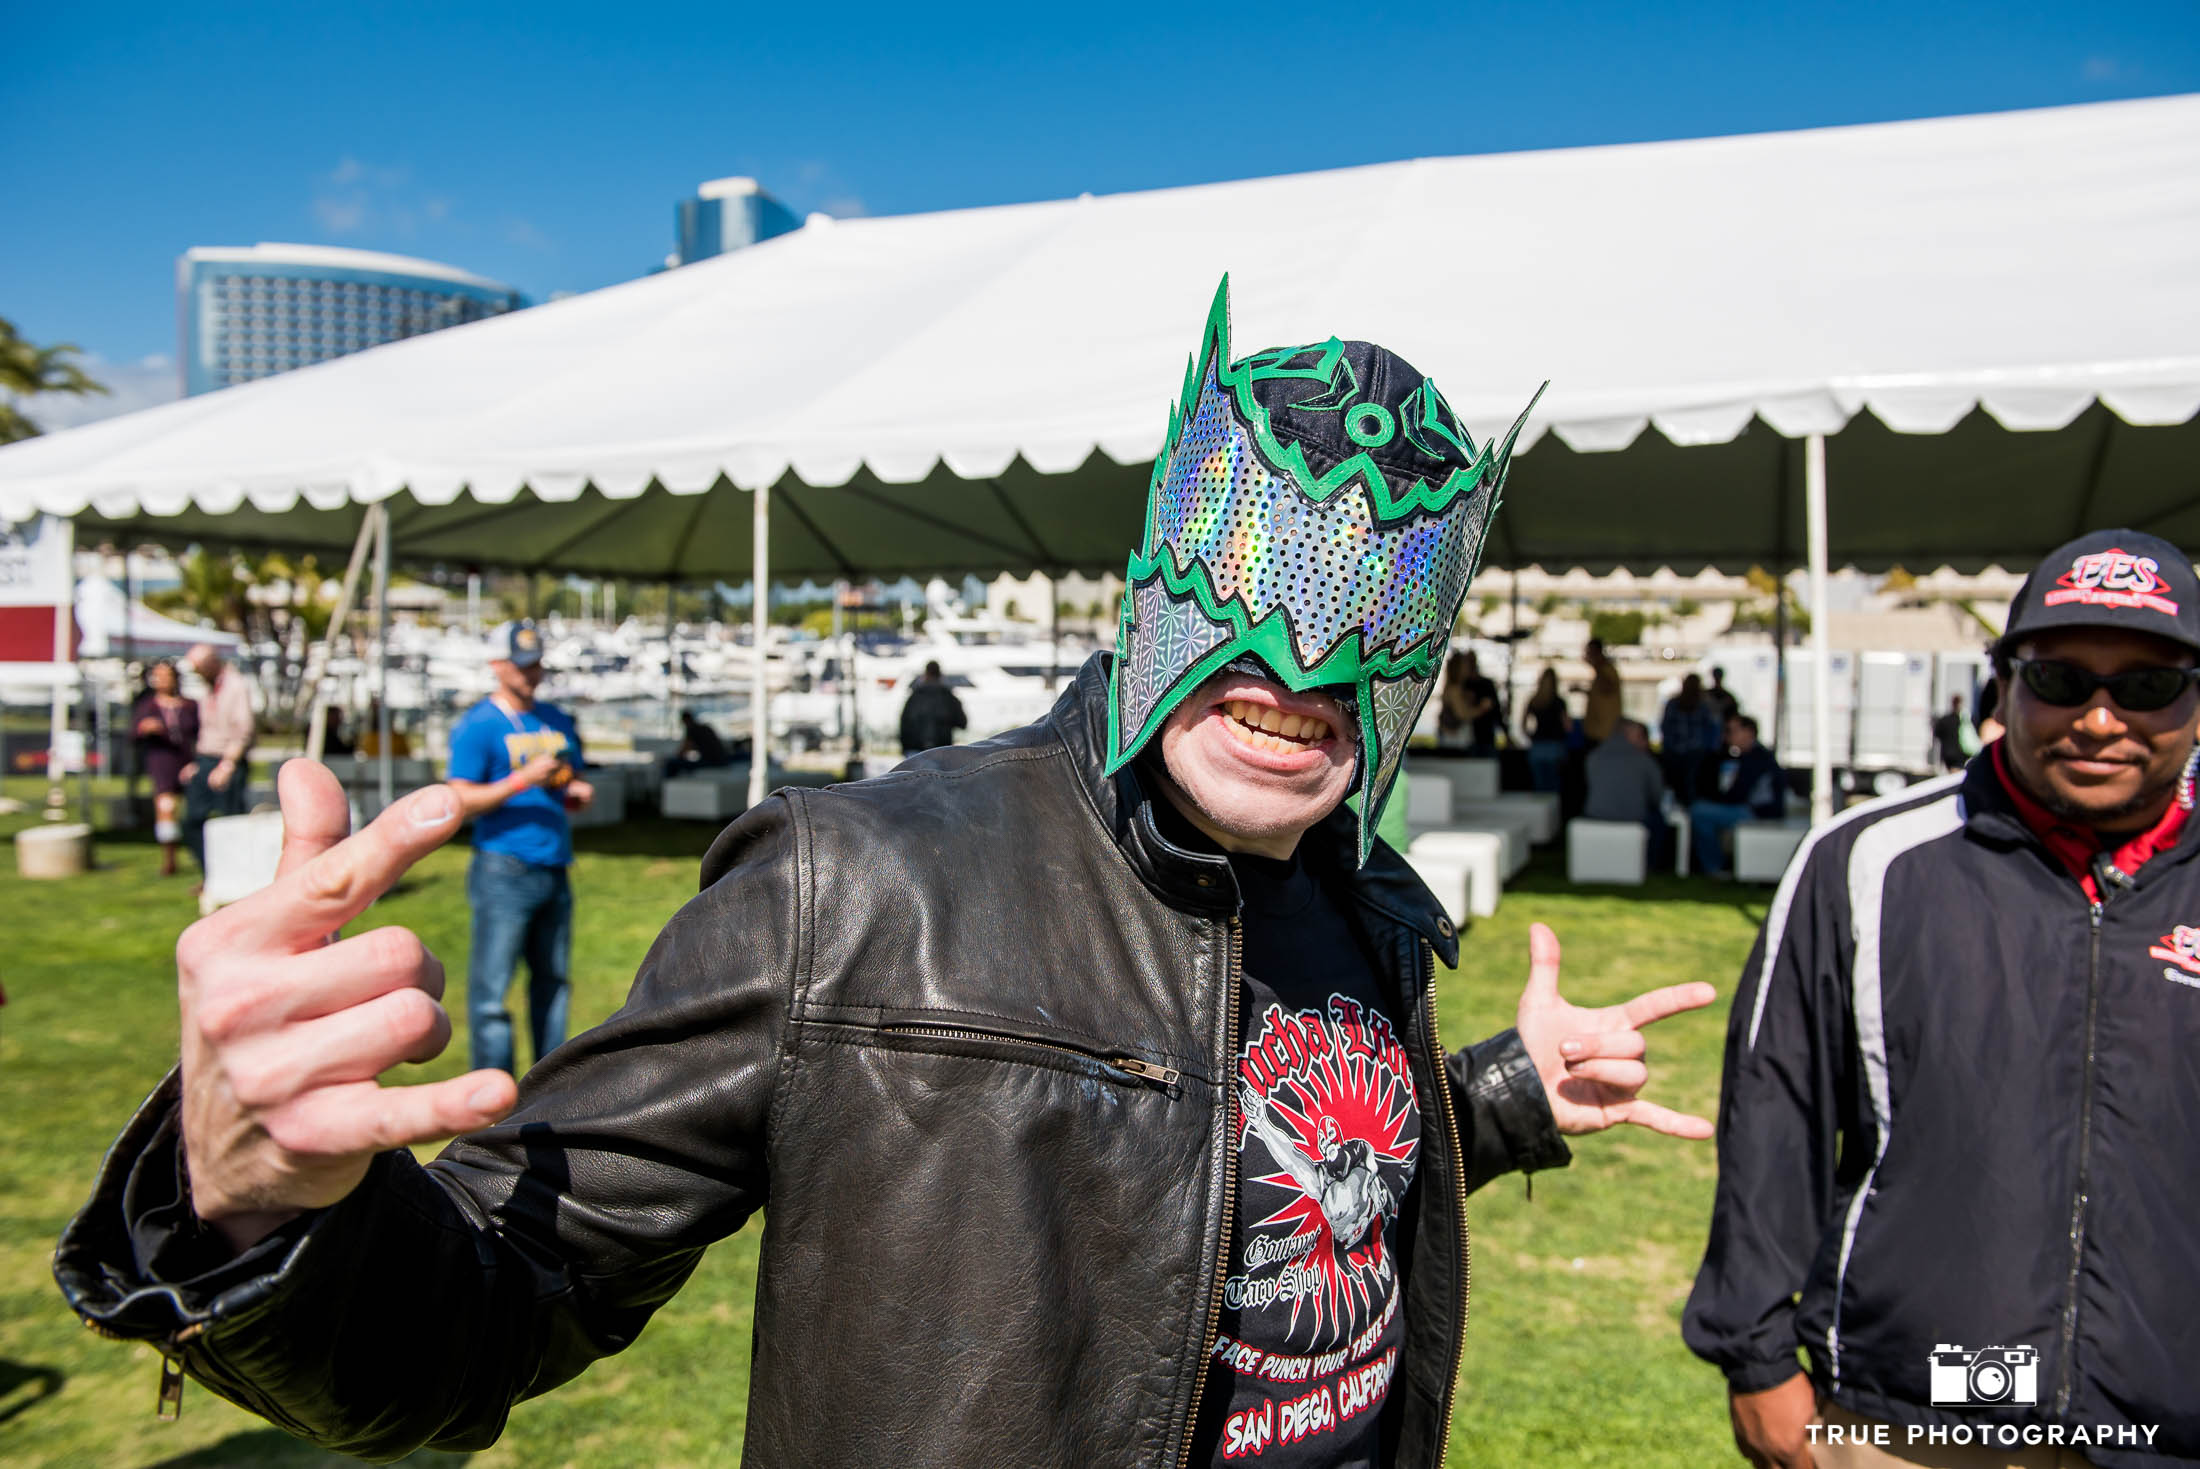 Event goer with wrestling mask at Best Coast Beer Fest